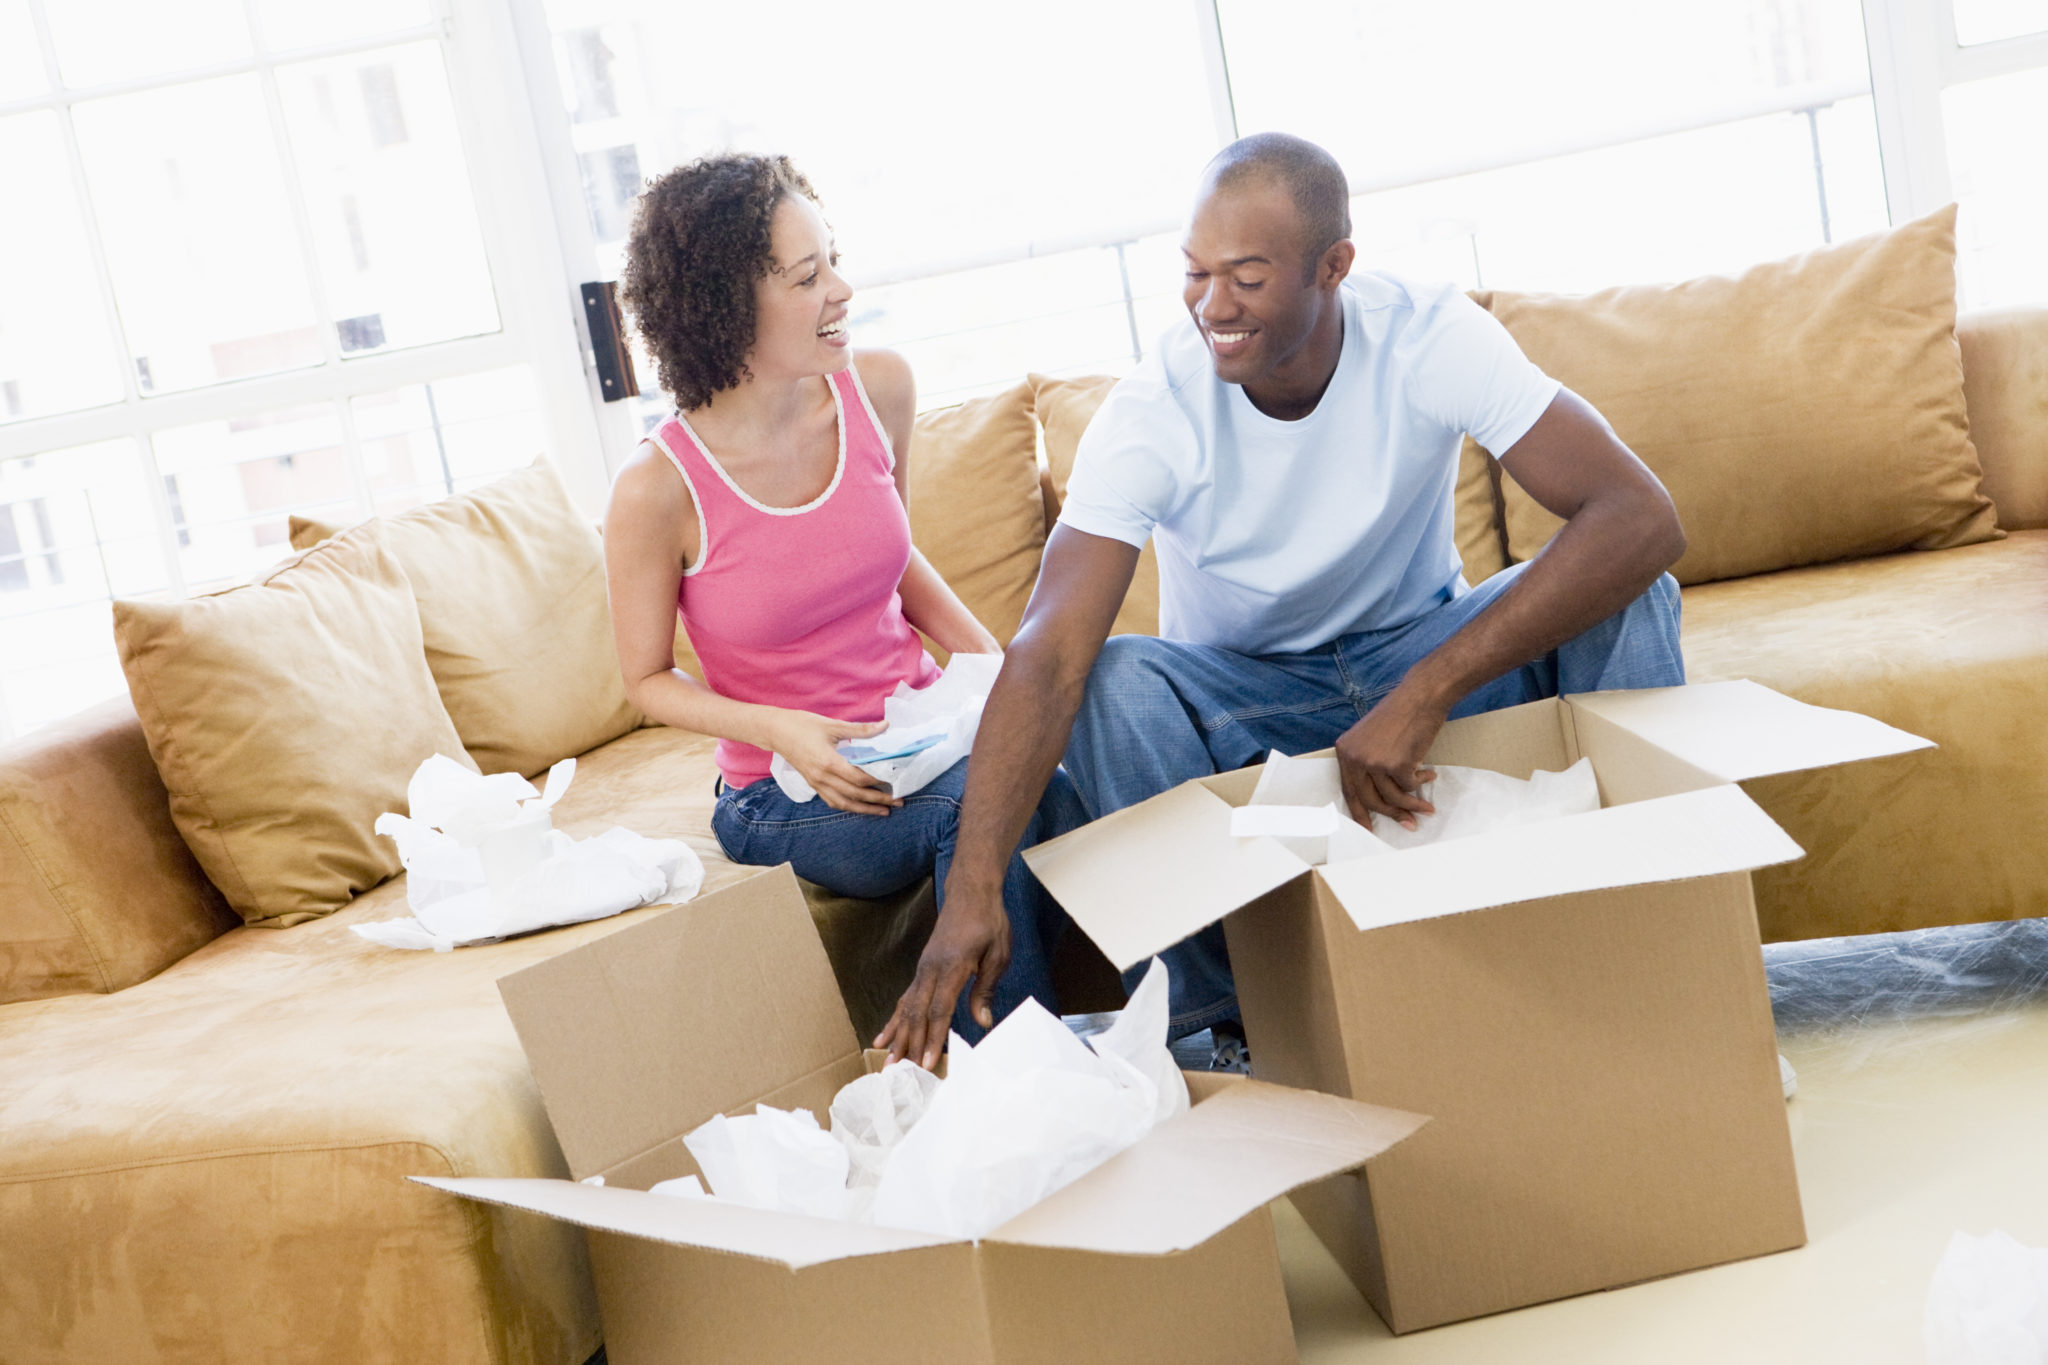 First-time homebuyers image via Shutterstock.